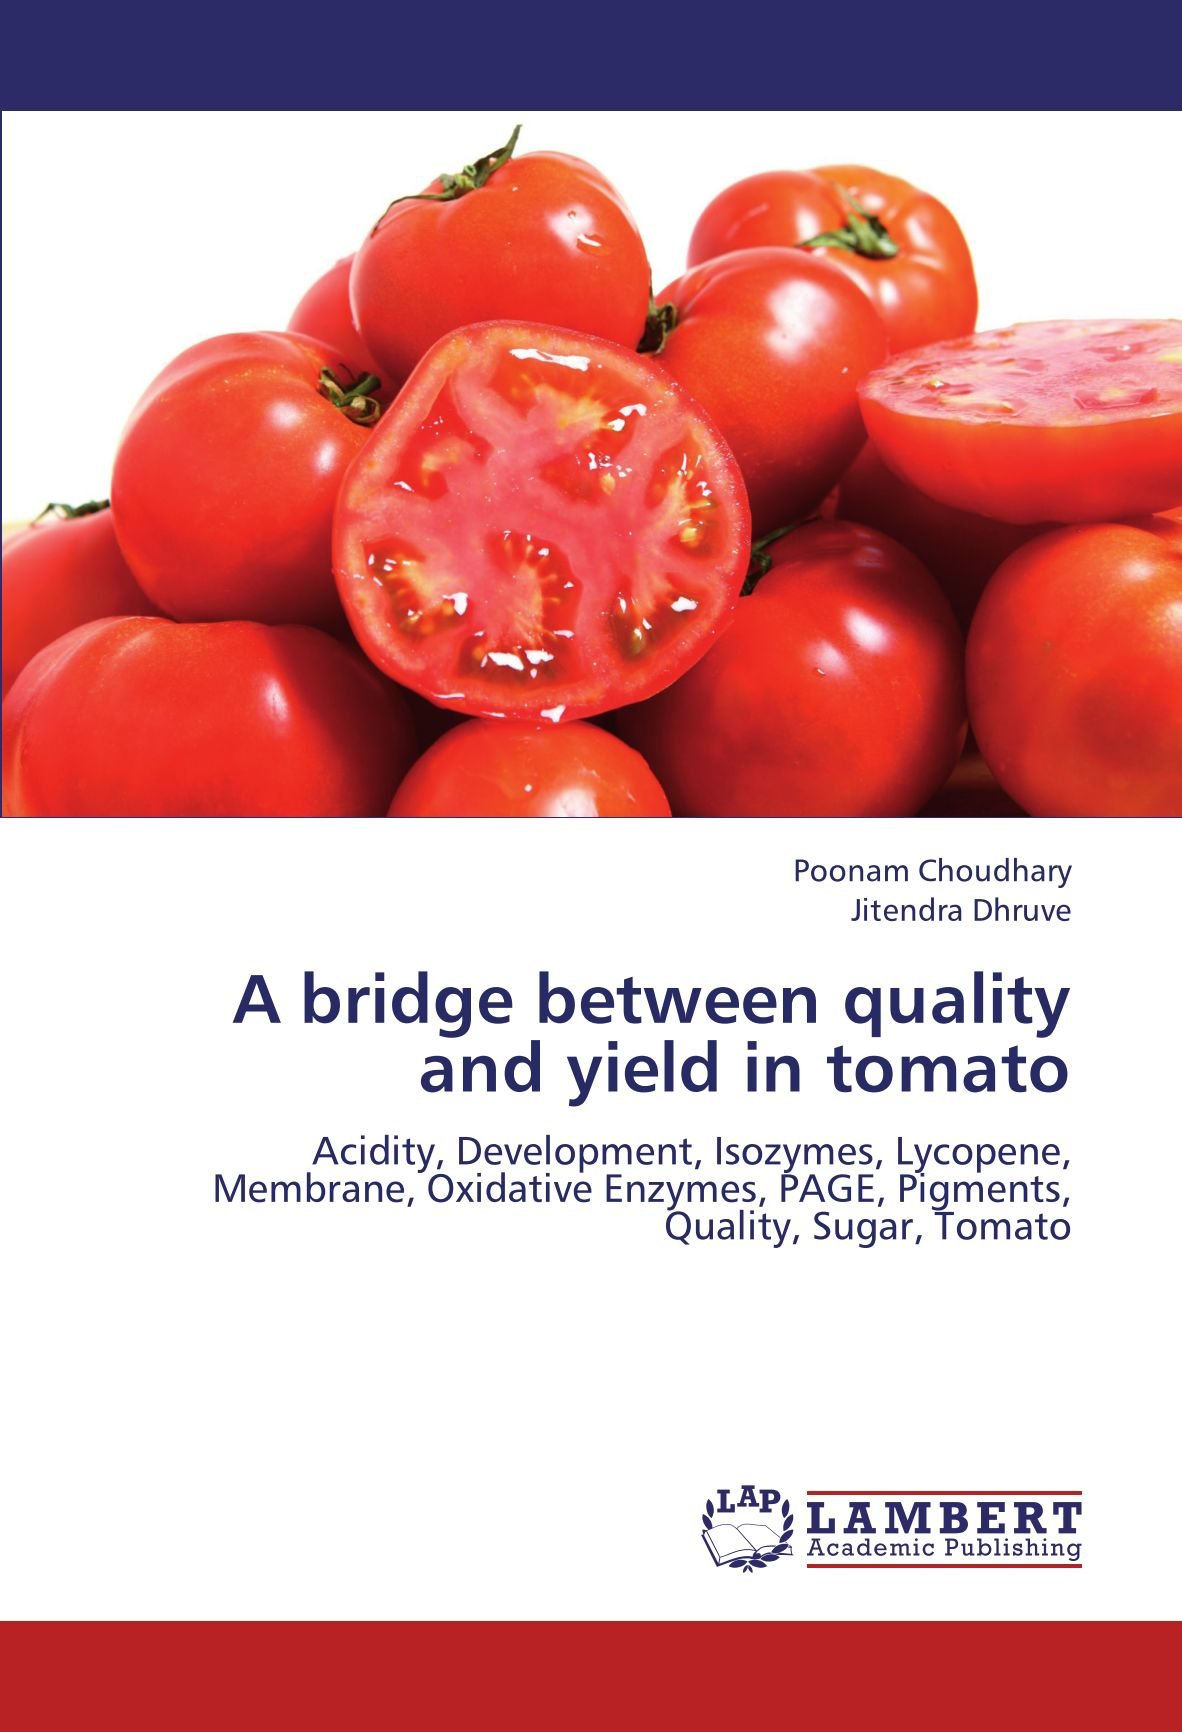 Download A bridge between quality and yield in tomato: Acidity, Development, Isozymes, Lycopene, Membrane, Oxidative Enzymes, PAGE, Pigments, Quality, Sugar, Tomato pdf